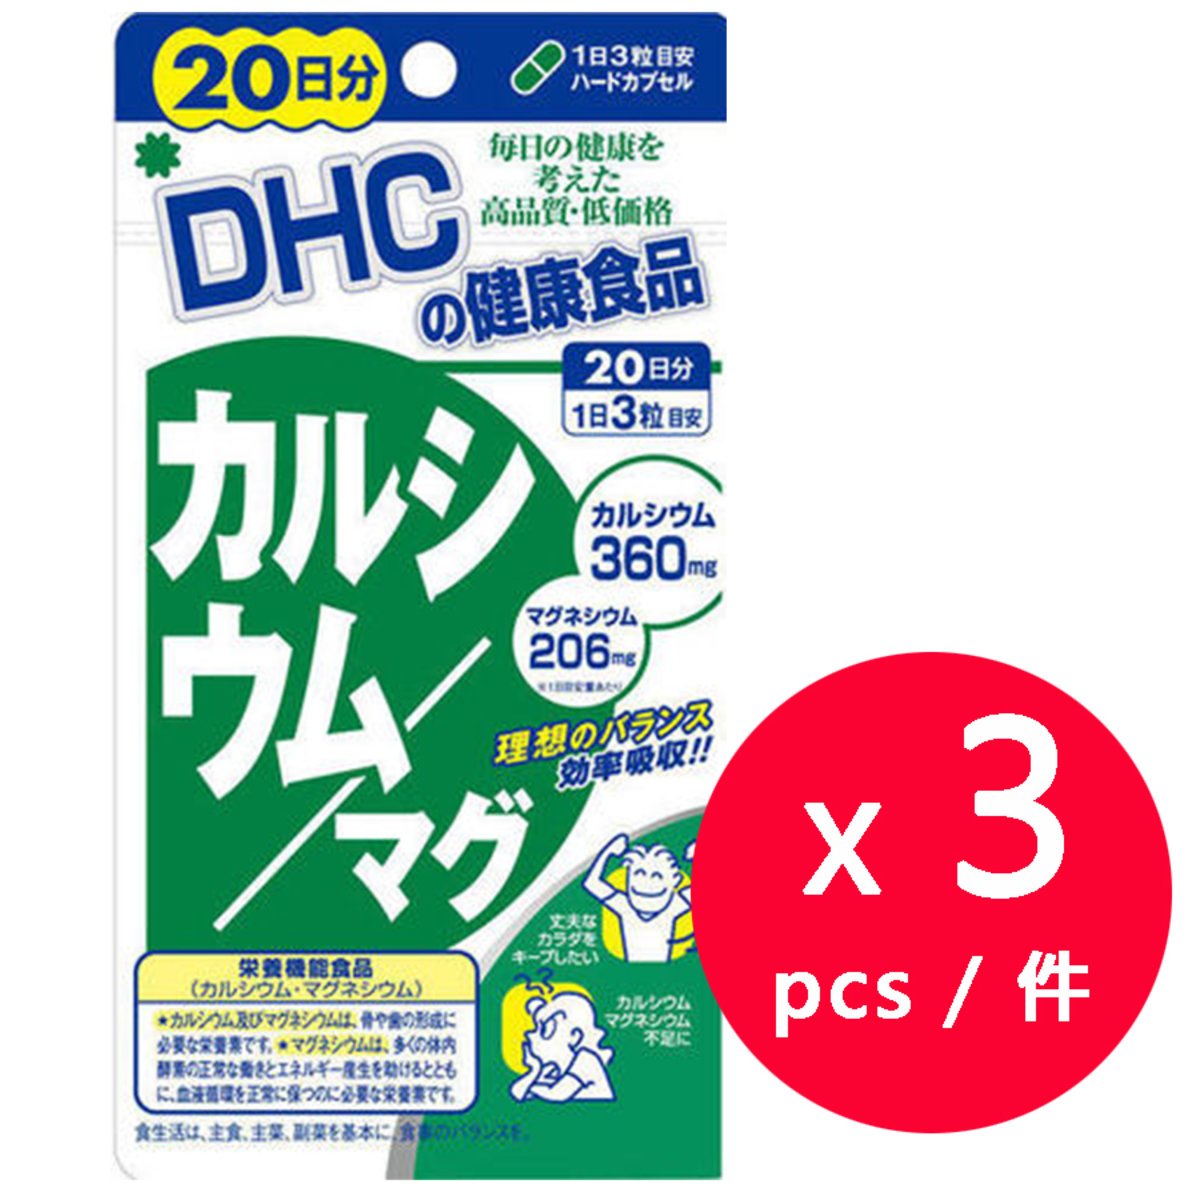 DHC Strong bone calcium and magnesium tablets (20 days) x 3 packs (Parallel Import)